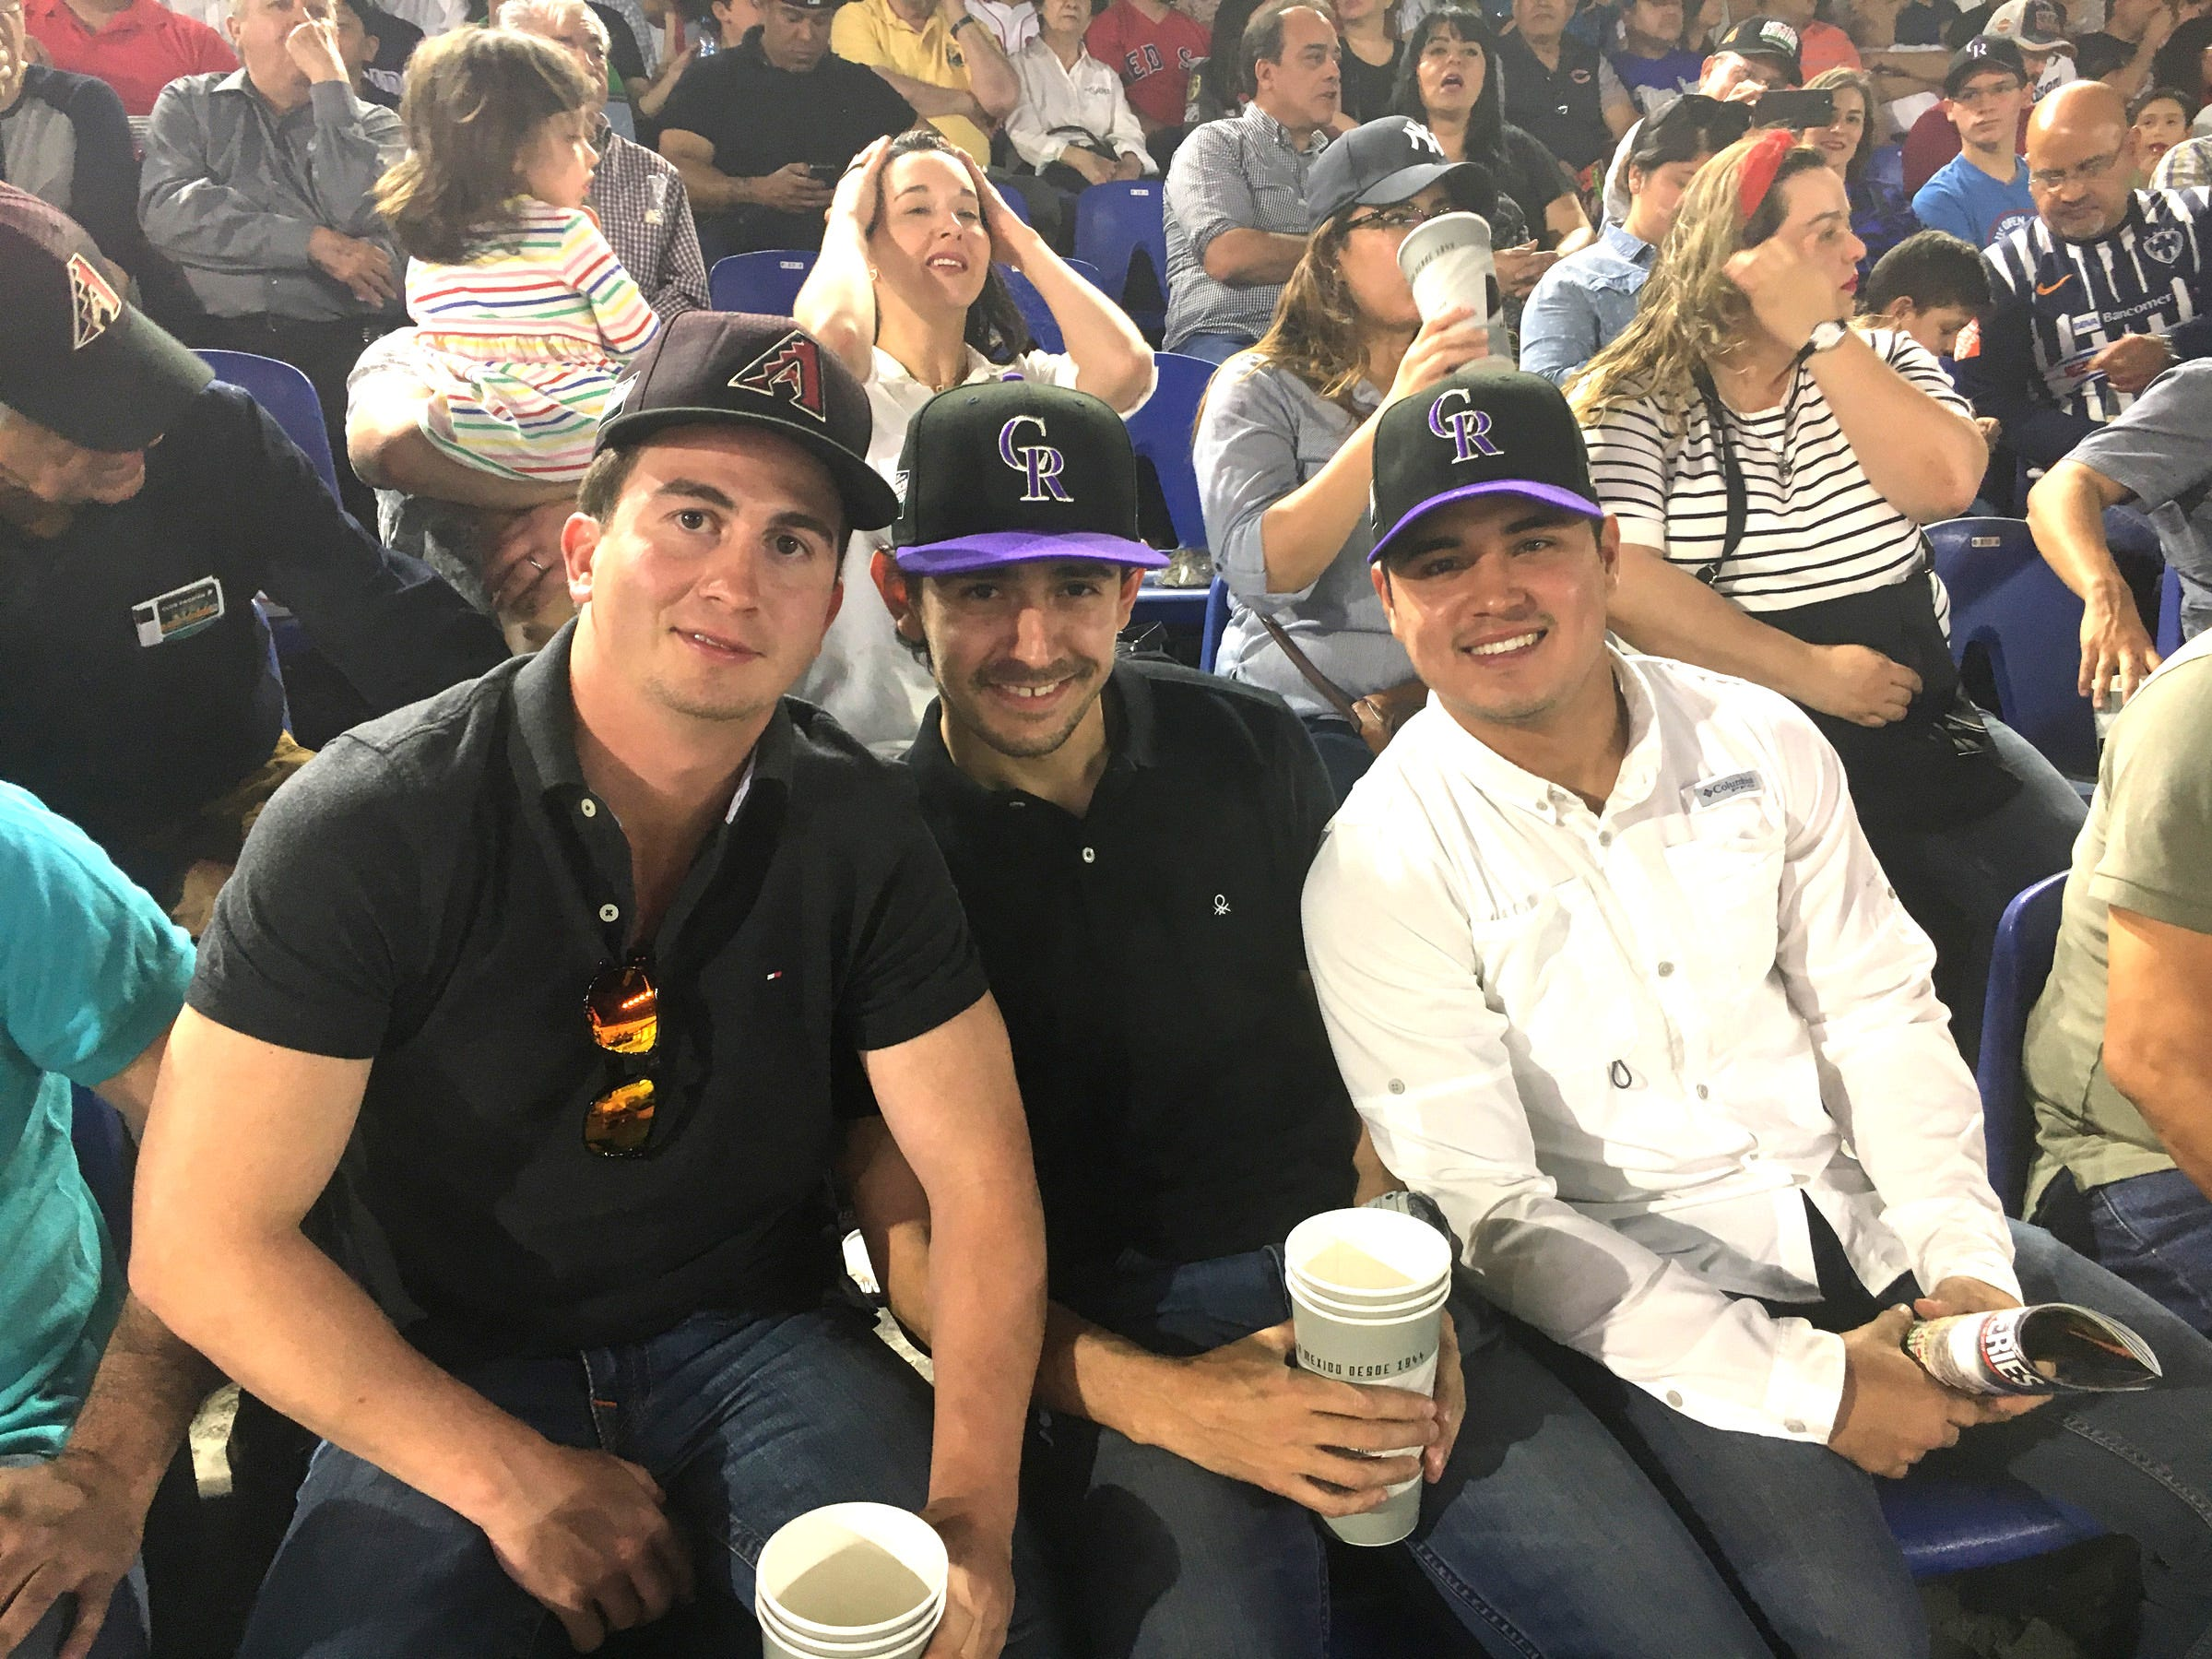 The Arizona Diamondbacks and the Colorado Rockies made many new fans when they played two spring training games in Monterrey, Mexico, in March 2019.